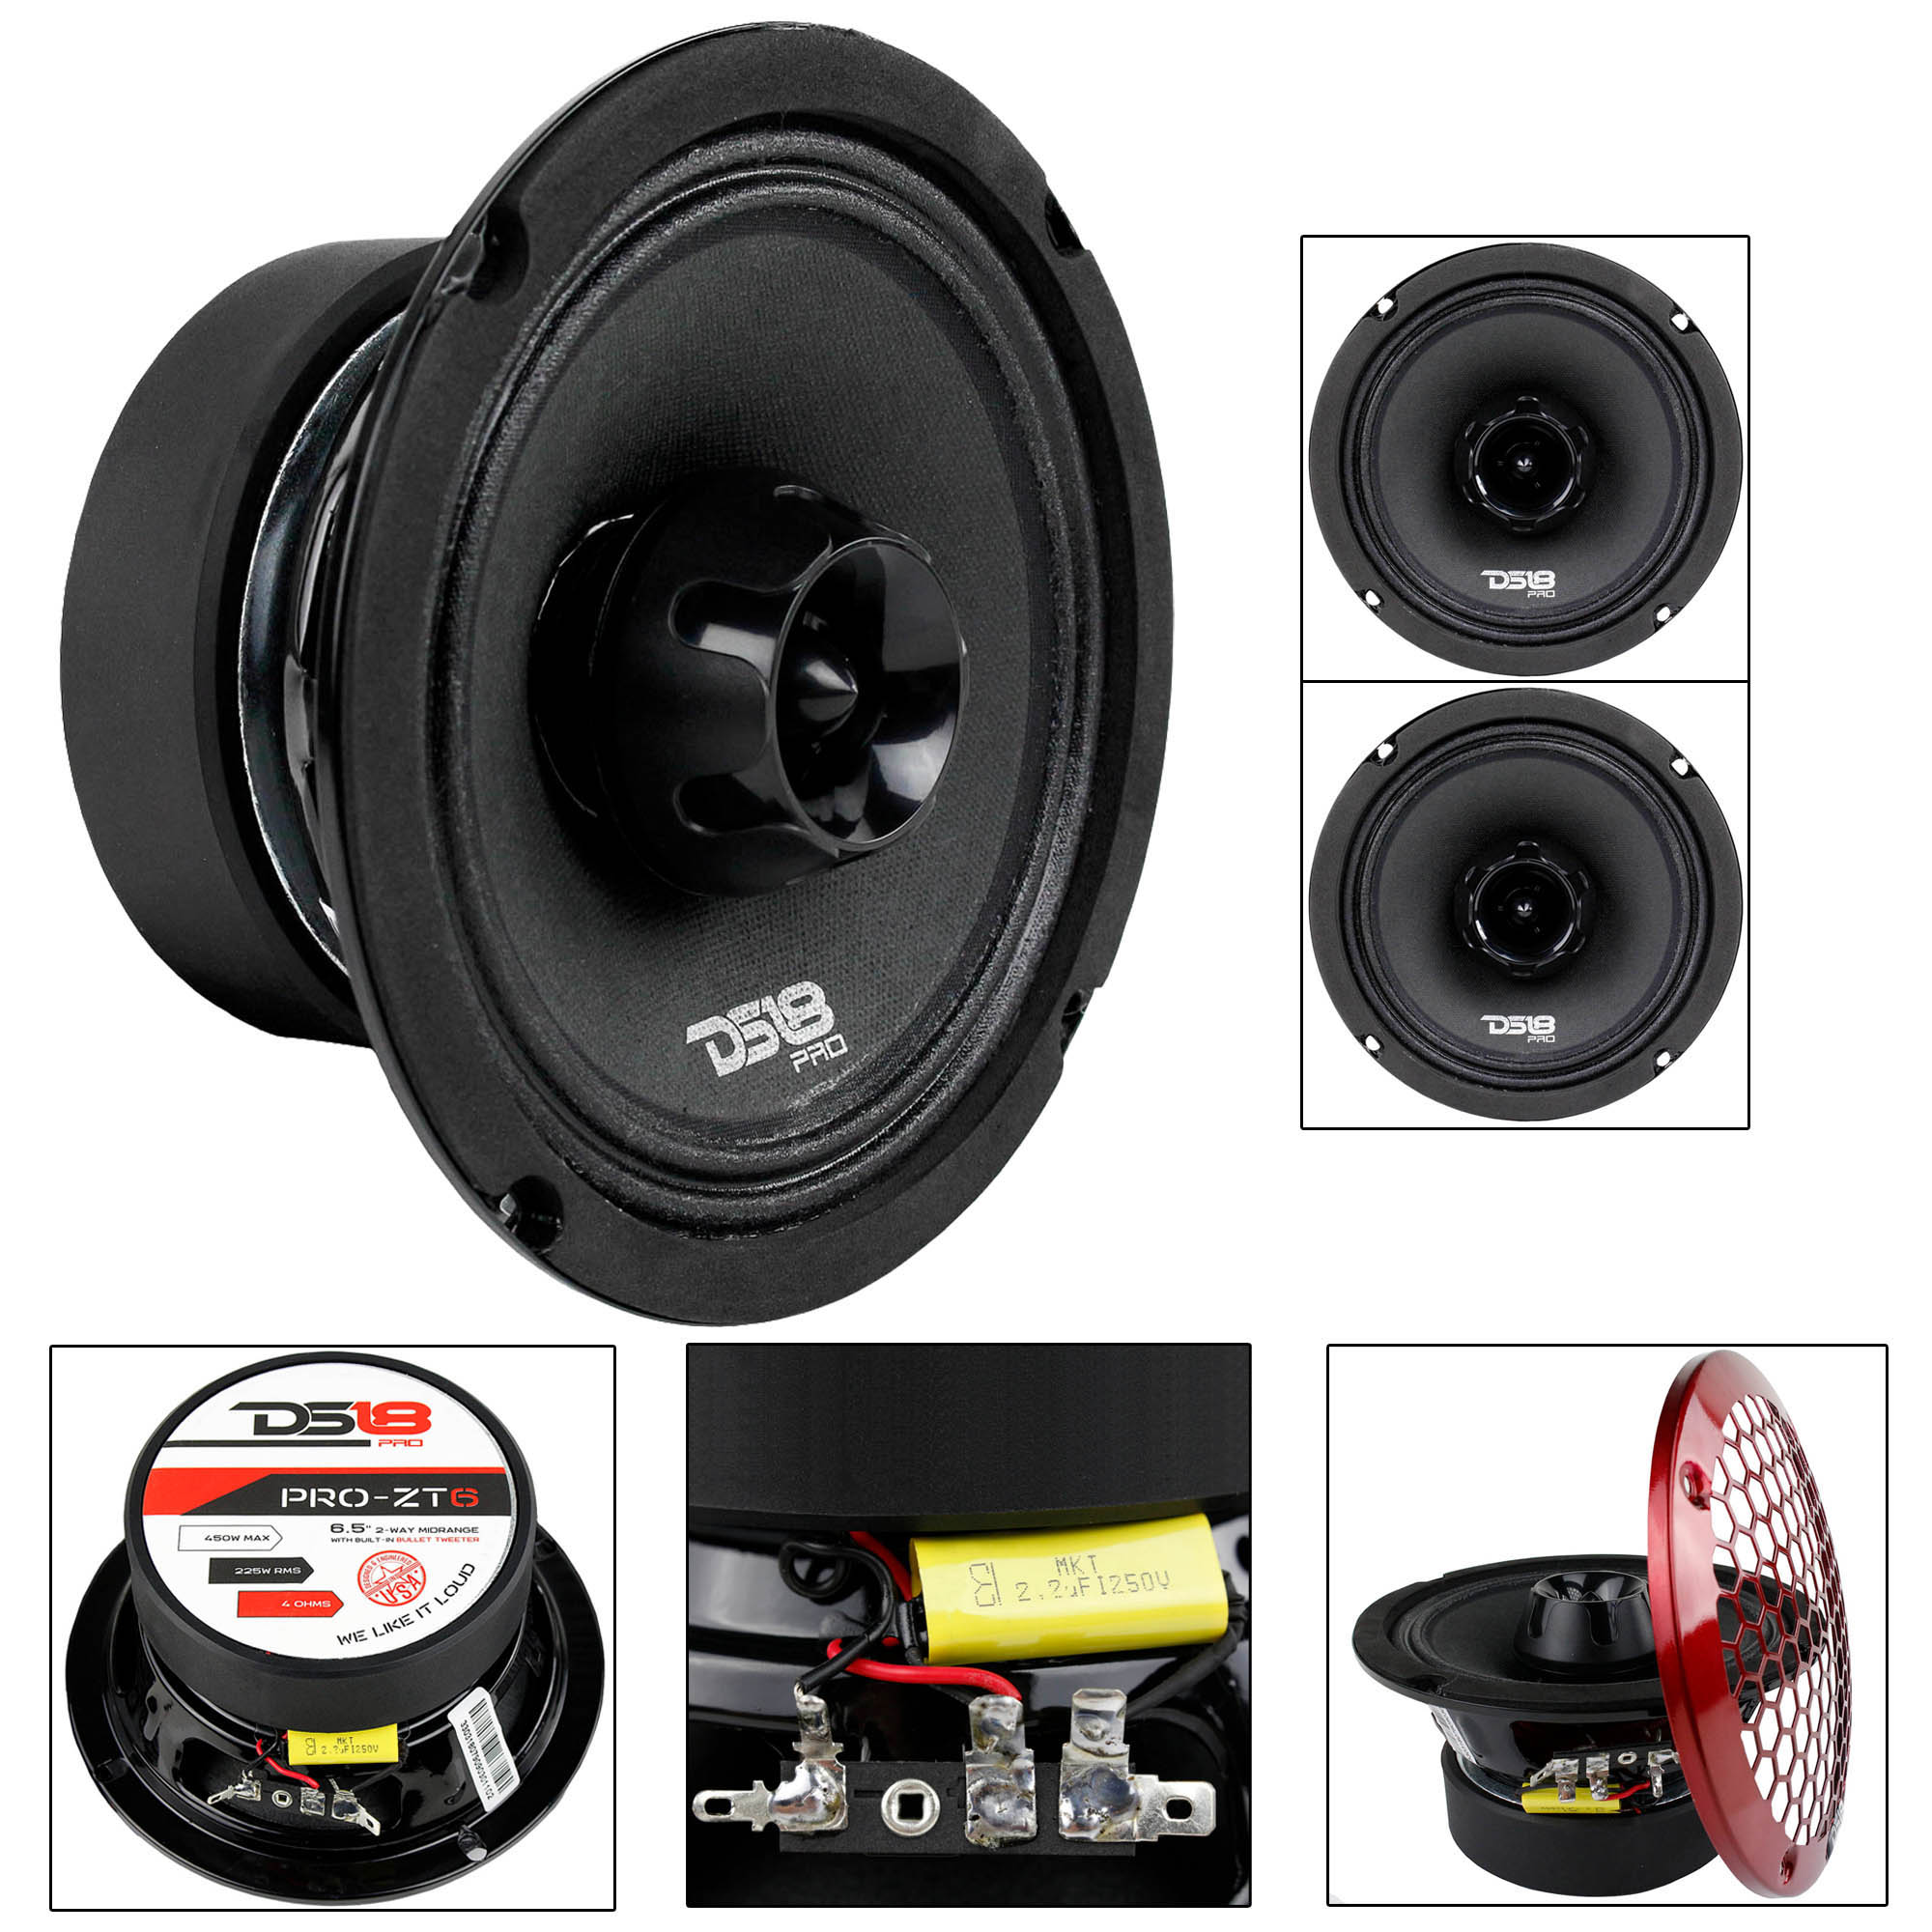 "2 Pack 6.5"" Midrange Speaker Built In Tweeter 450 Watts Max 4 ohm DS18 PRO-ZT6"